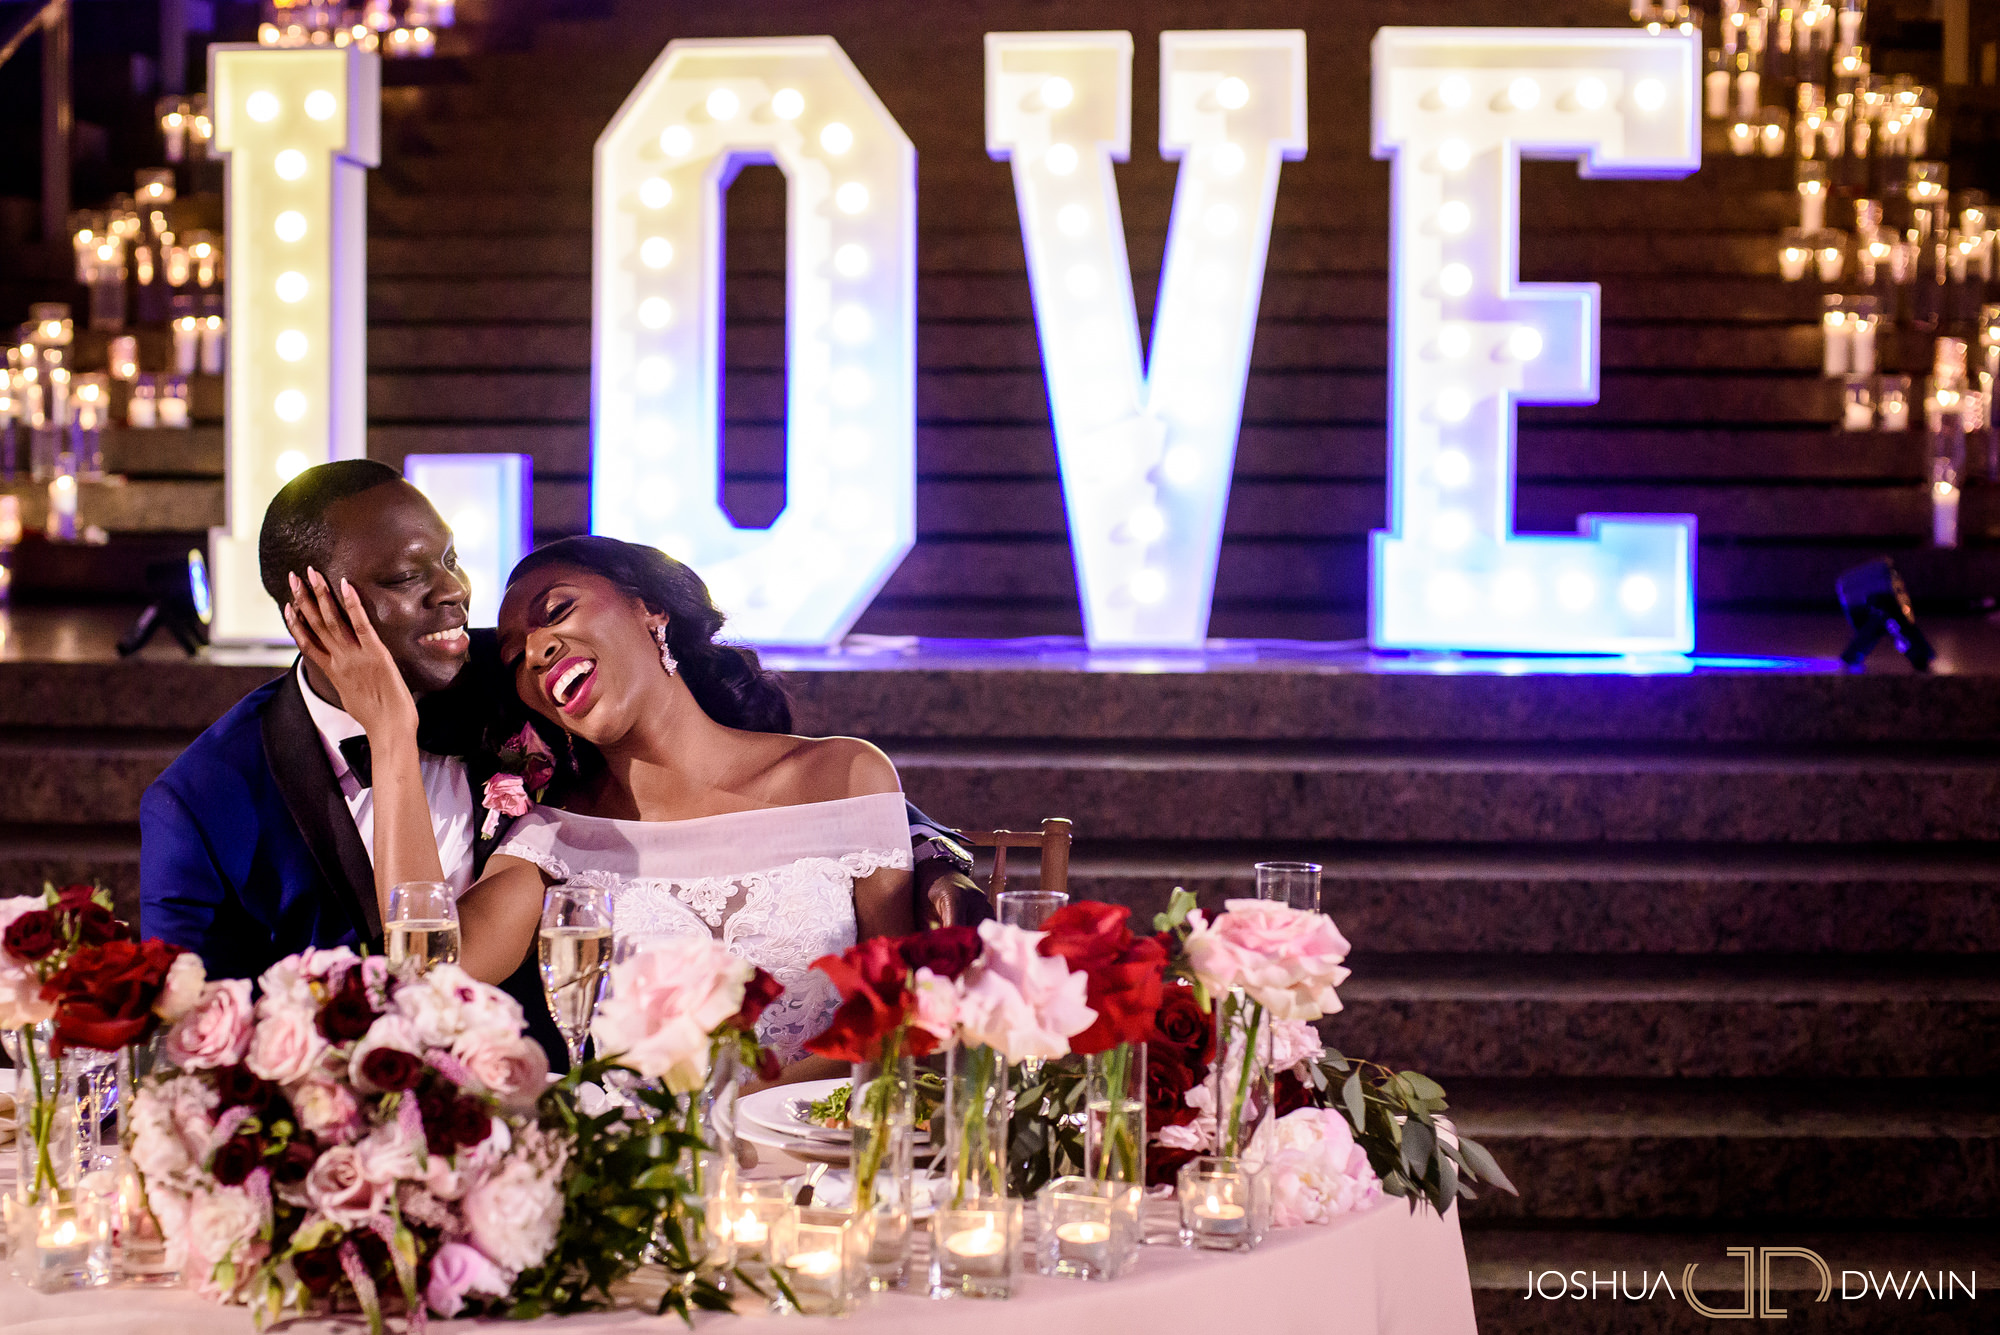 emerald-tolu--046-ronald-reagan-building-trade-center-best-washington-dc--wedding-photographer-joshua-dwain